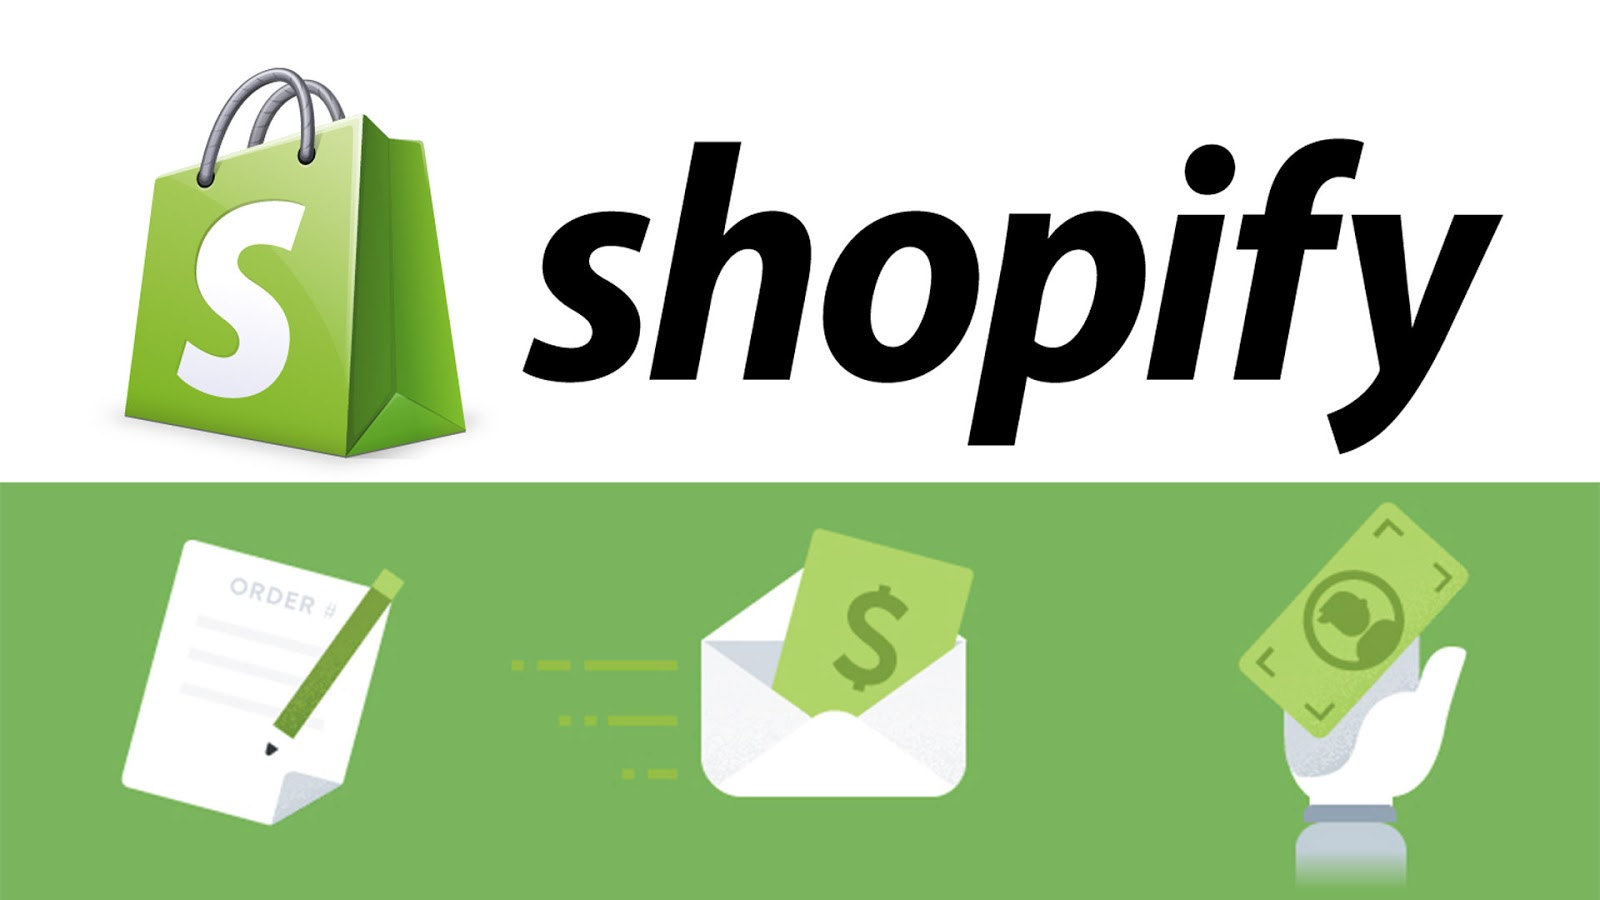 Create your store shopify